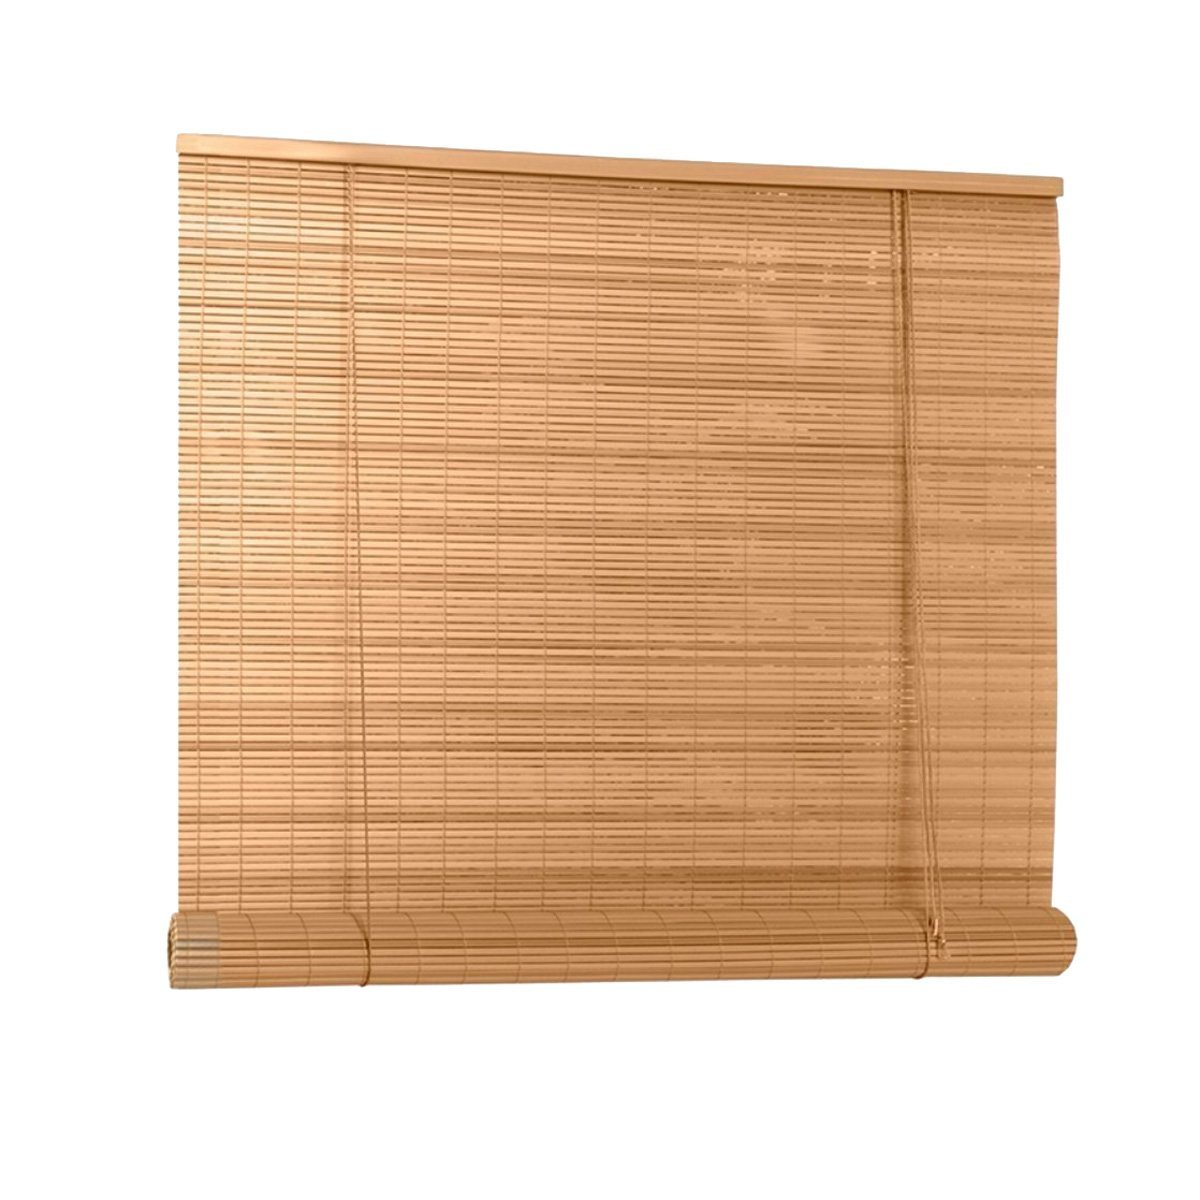 Lewis Hyman Roll-Up Window Blind 30-inches by 72-inches (Woodgrain)